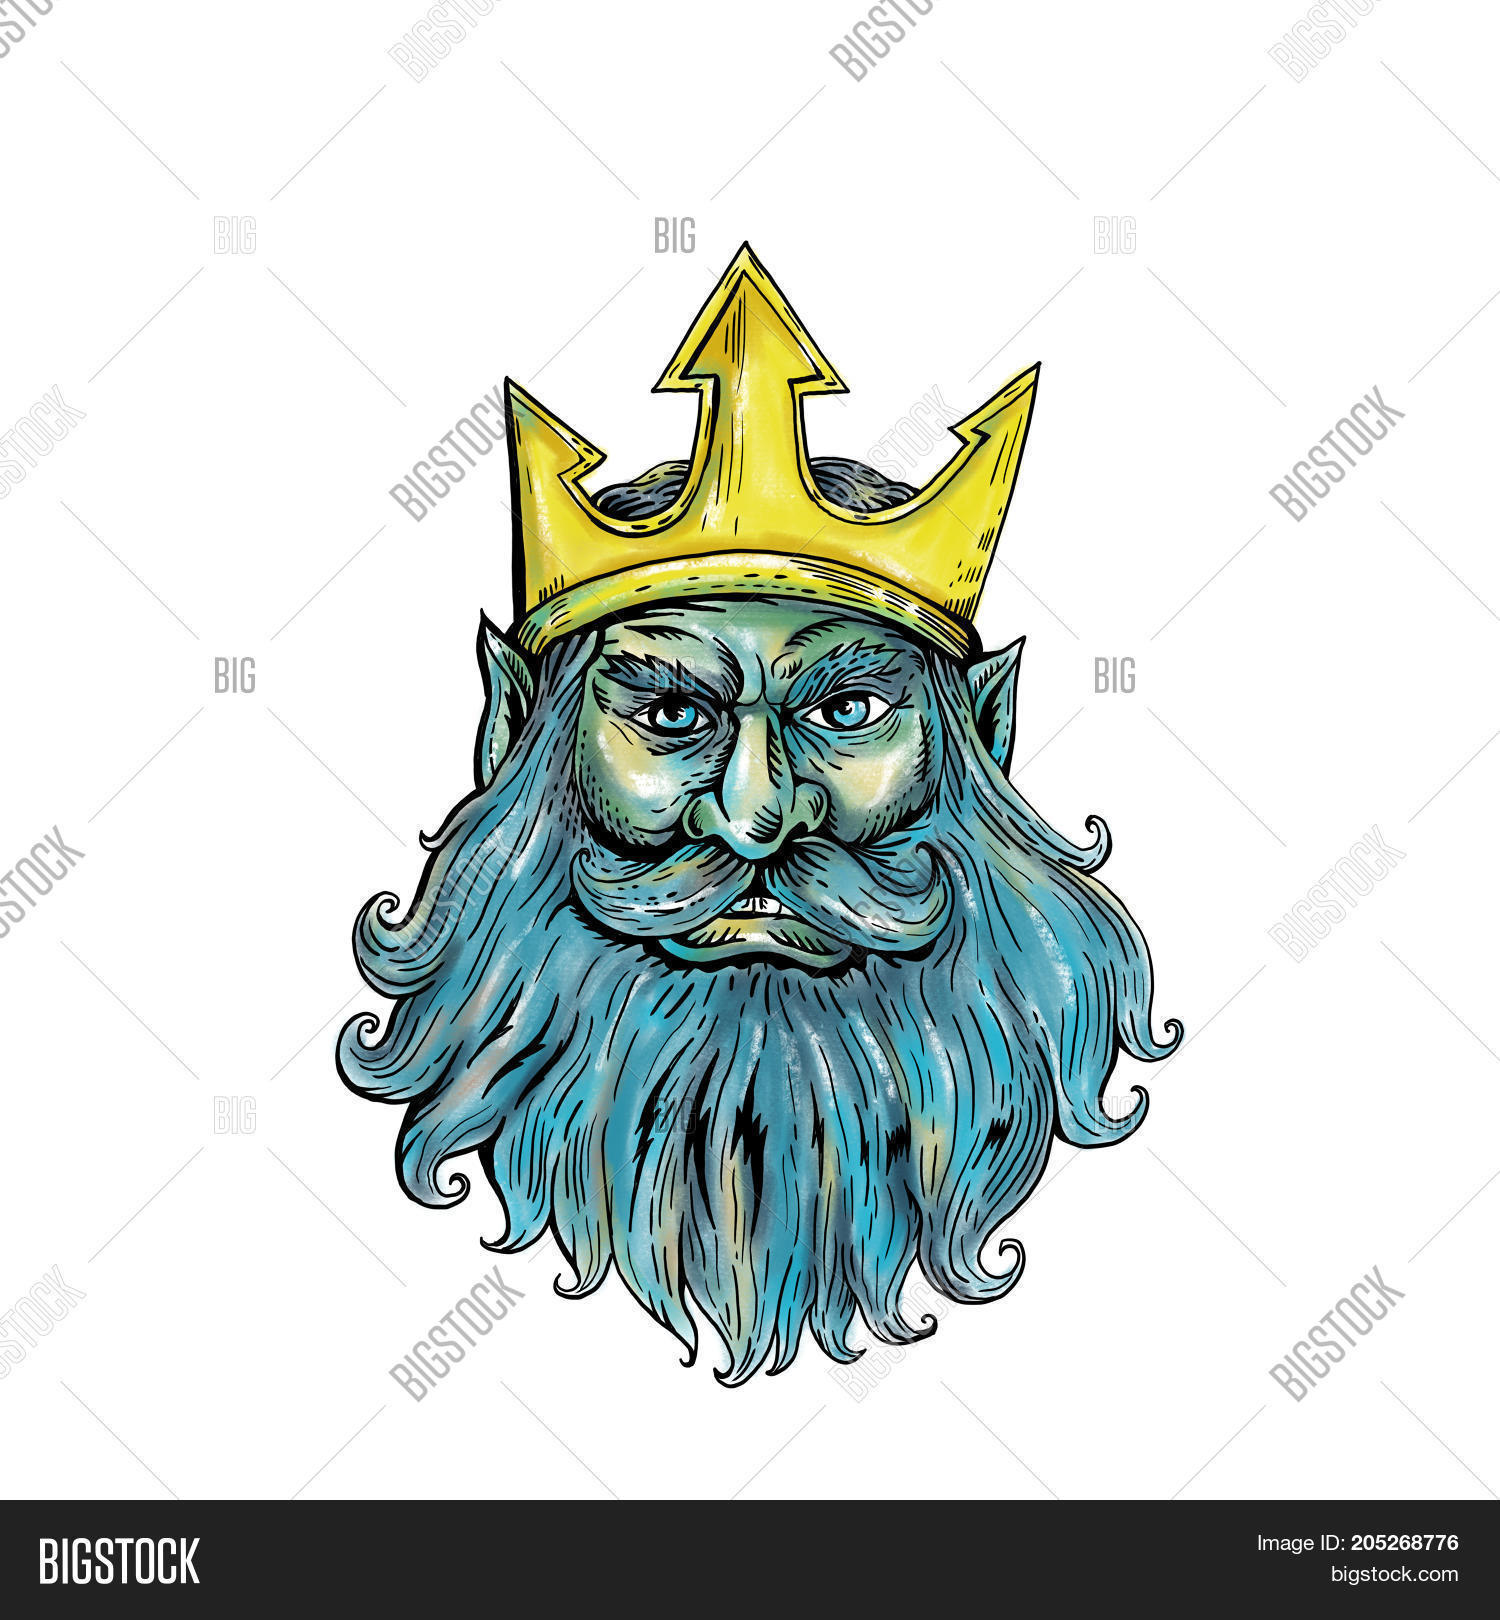 Poseidon trident images illustrations vectors poseidon trident woodcut style illustration of head of neptune poseidon or triton wearing a trident crown with flowing biocorpaavc Image collections